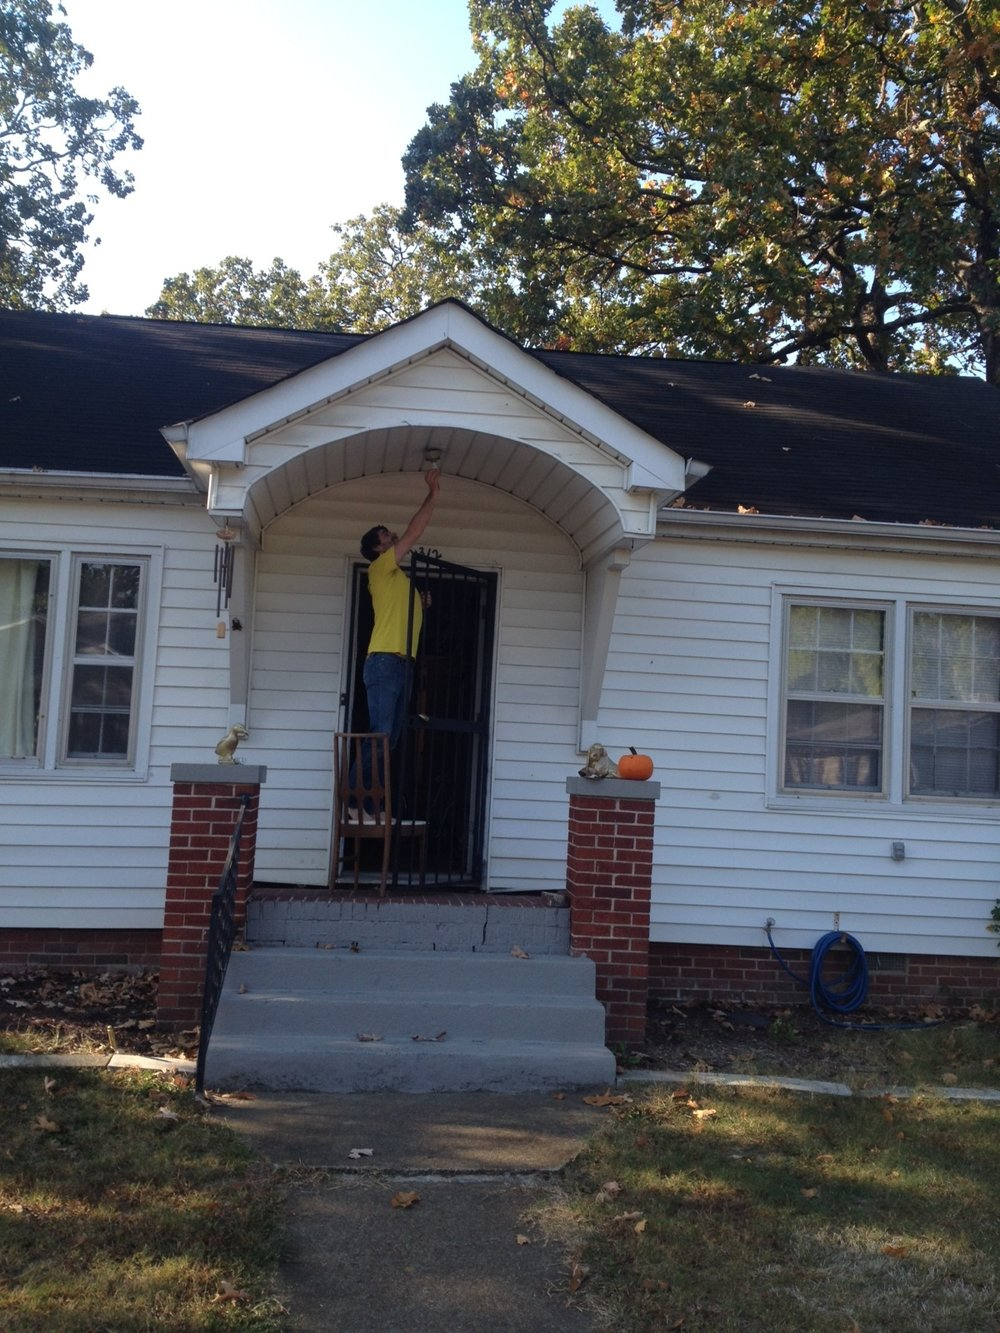 A Ridgedale resident immediately replacing his porch light with an LED bulb!